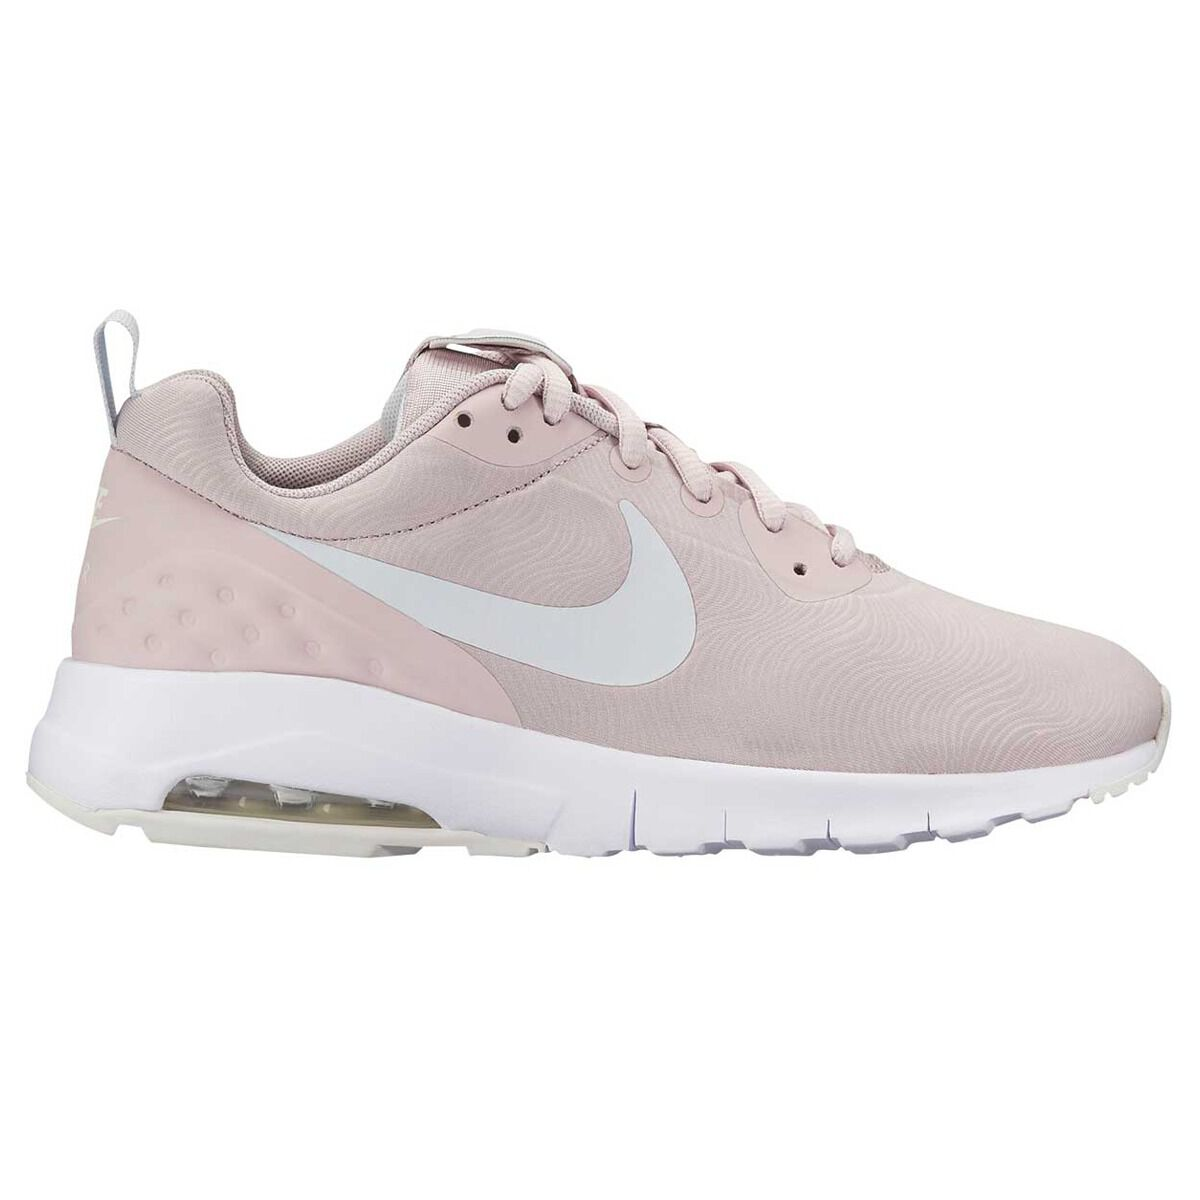 Nike Air Max Motion Low Womens Casual Shoes Pink White US 6